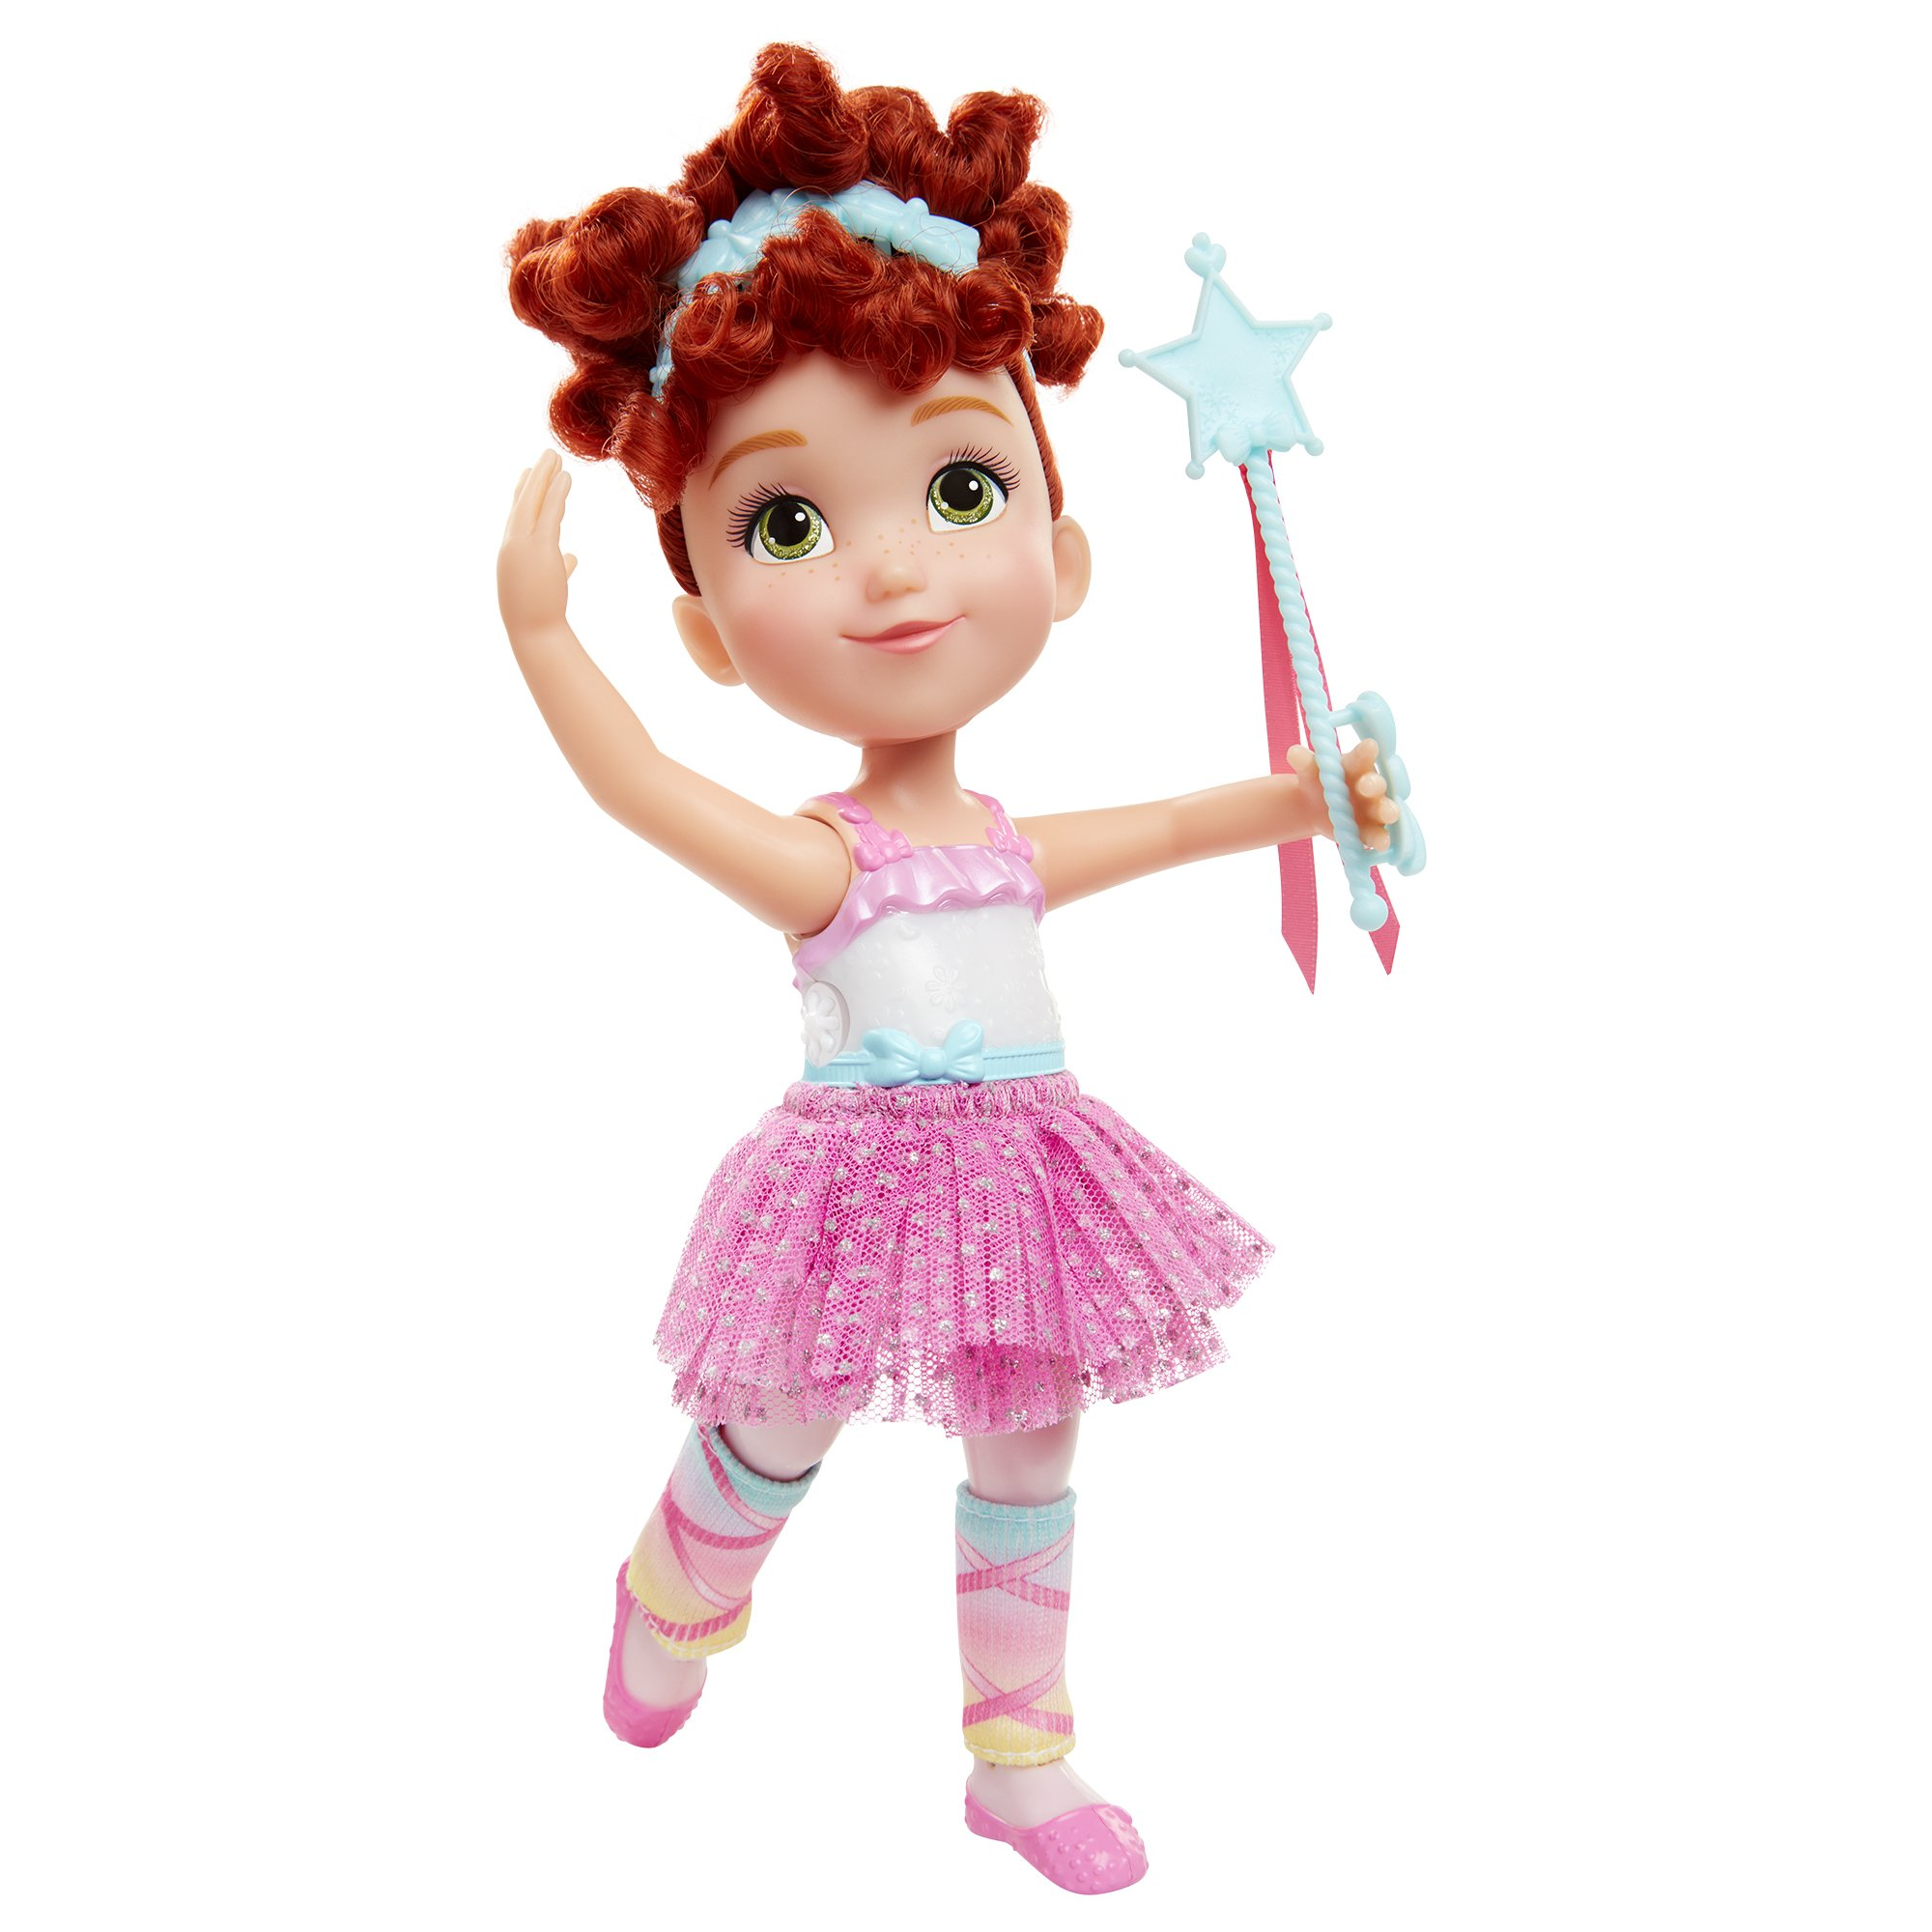 Fancy Nancy Ballerina Doll, 10 inches Tall, Multicolor